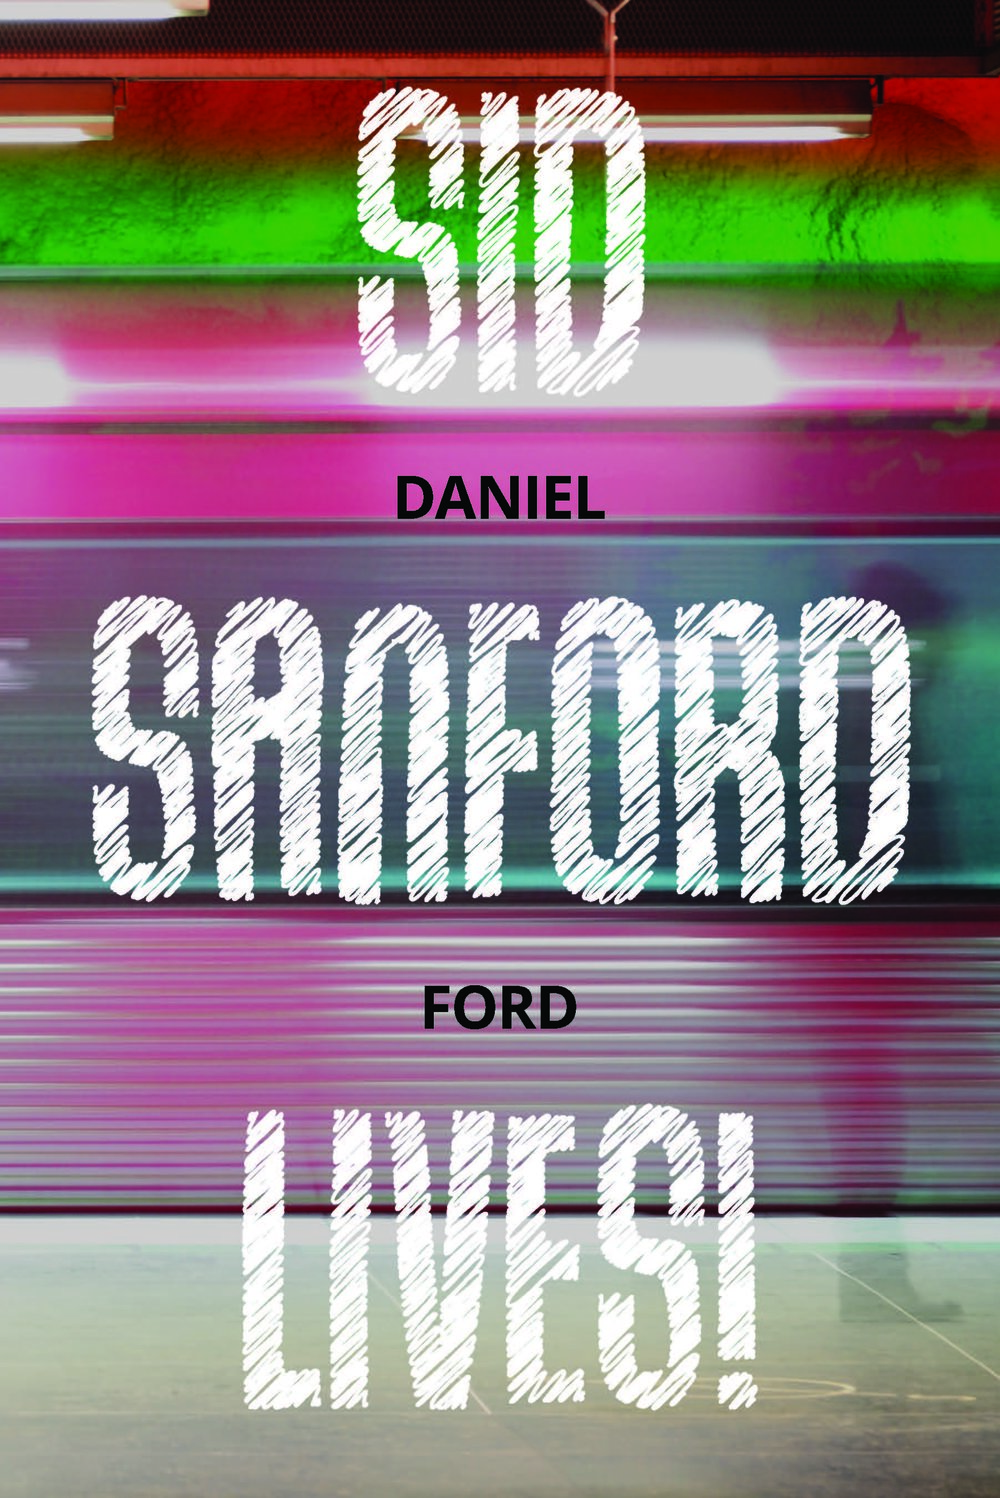 """Sid Sanford Lives! - Riffing on noir and told in a series of vignettes, Sid Sanford Lives! douses humanistic themes—love, loss, and family—in bourbon, shoves them in the barrel of a gun, and shoots.Sid Sanford always follows a path, just not his own. From backyard Wiffle ball games to New York City skyscrapers, Sid finds triumph and pain in equal measure during his uncertain, and at times violent, thrust into manhood.A colorful, loyal family, a plethora of eccentric friends, and a few star-crossed soulmates highlight his journey, but it's ultimately up to Sid whether his destiny fulfills his potential or drowns in the bottom of a bottle.Daniel Ford knocks the stuffing out of Sid Sanford, only to skillfully stitch him back together, presenting a complex, flawed, and compelling character. Sid Sanford Lives! is a wry, touching, and captivating portrait of the highs and lows that make up a life.""""—W.B. Belcher, author of Lay Down Your Weary Tune"""